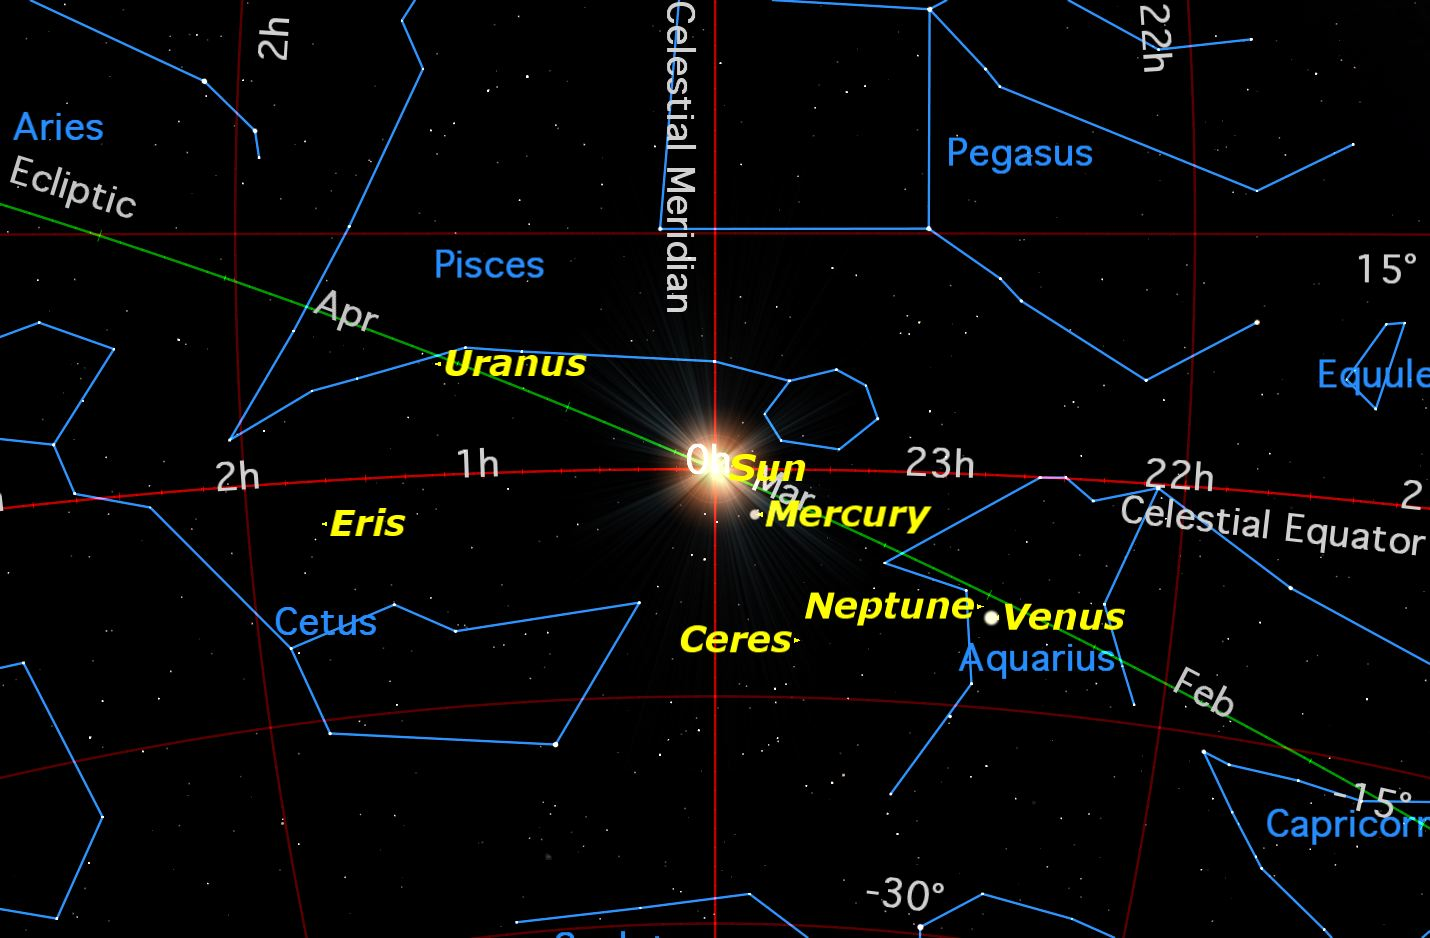 Spring Is Here! Check Out the Equinox's Quirky Math